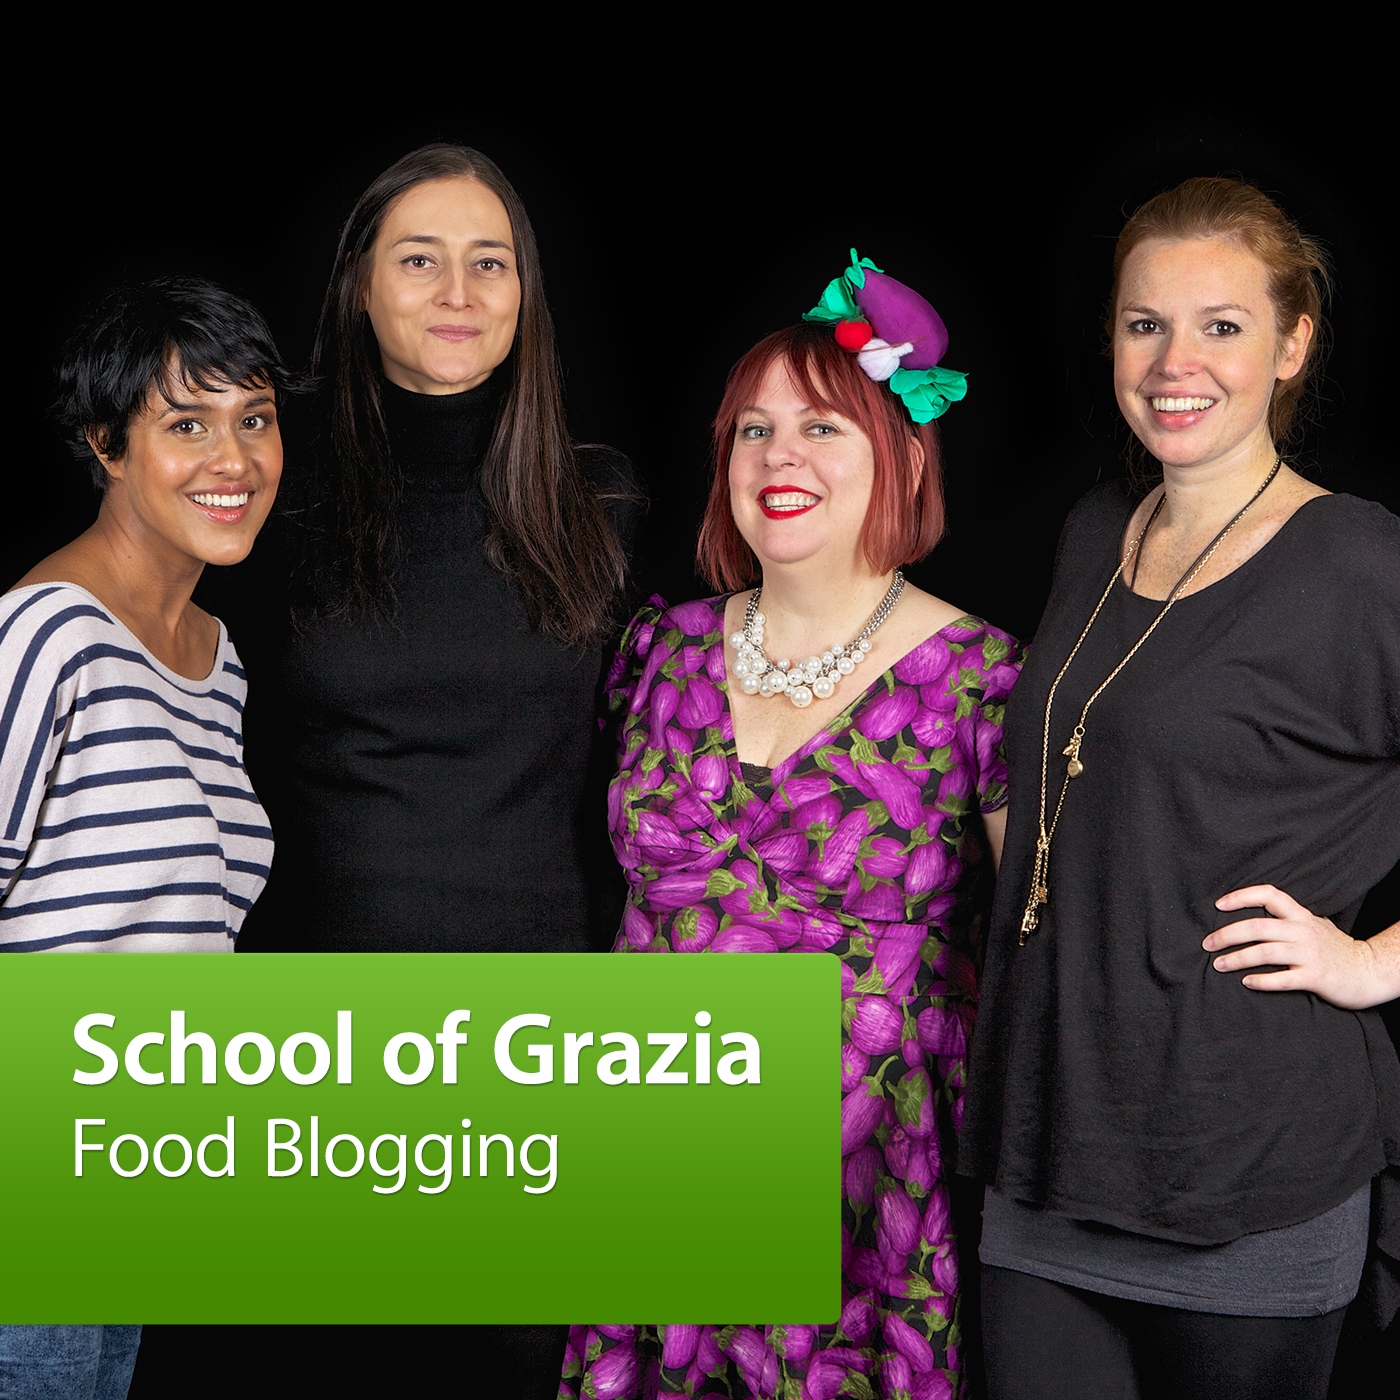 School of Grazia: Food Blogging